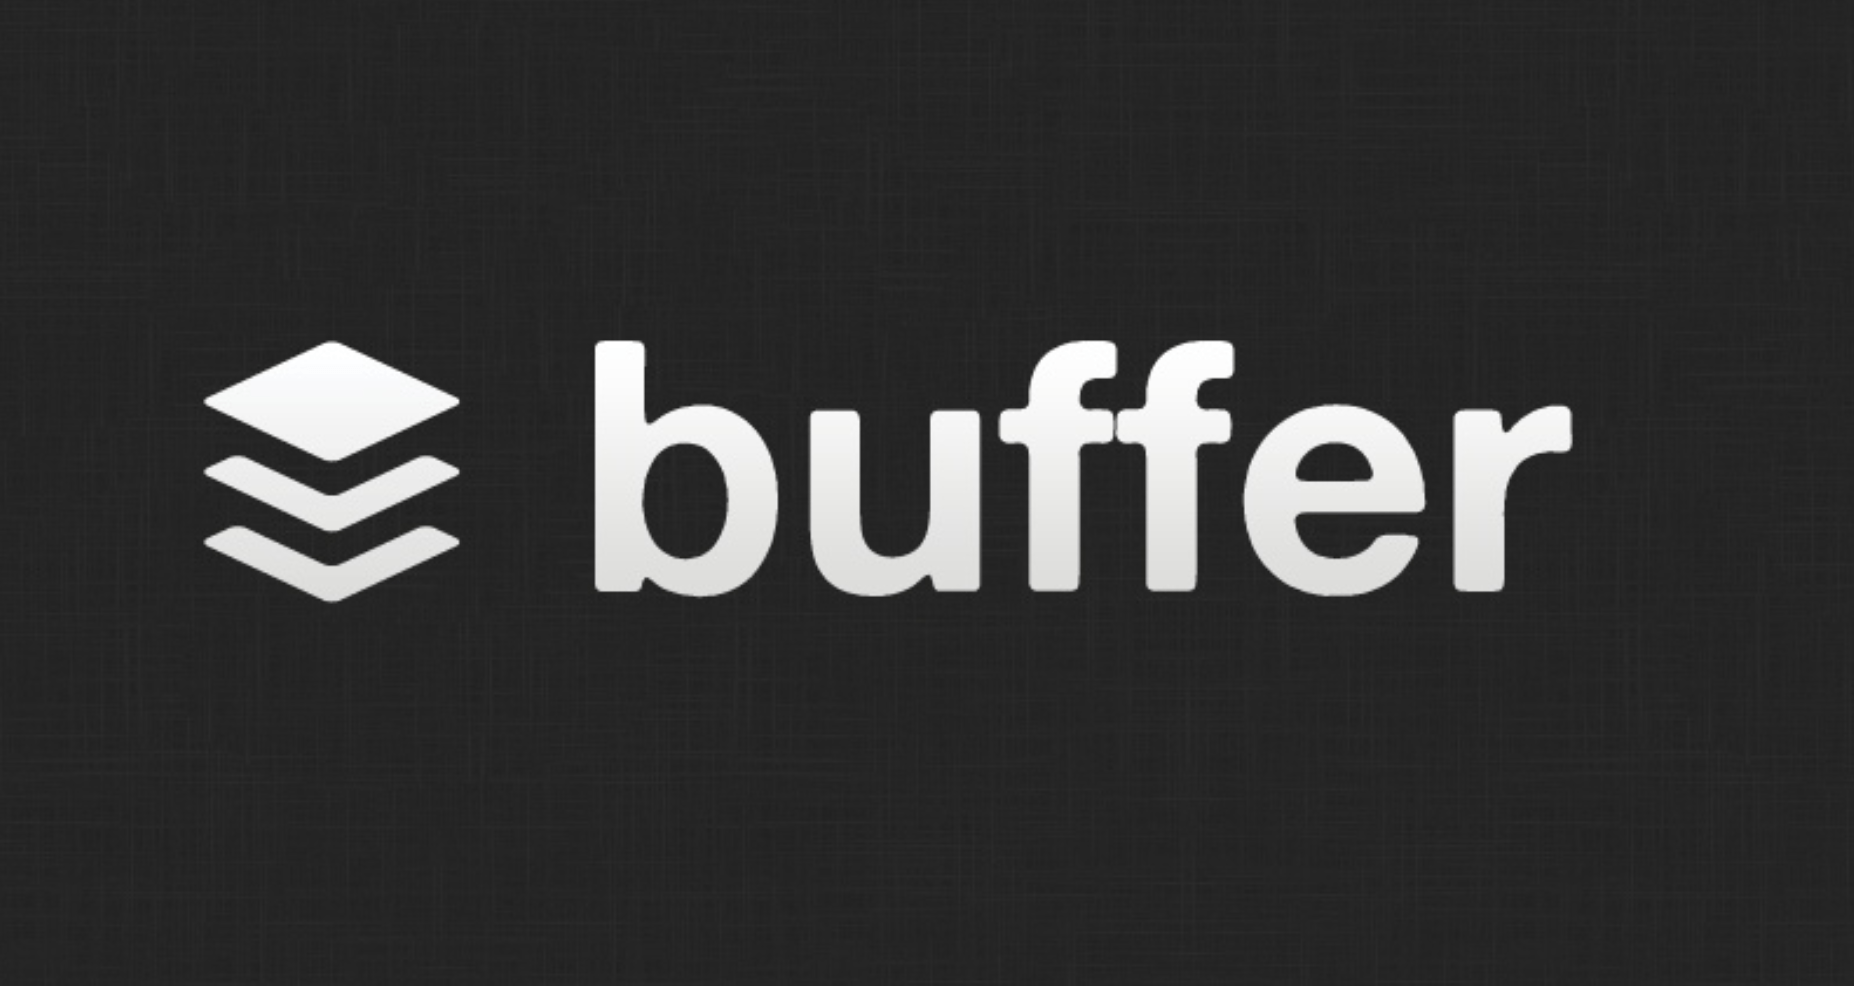 Buffer's seed pitch deck